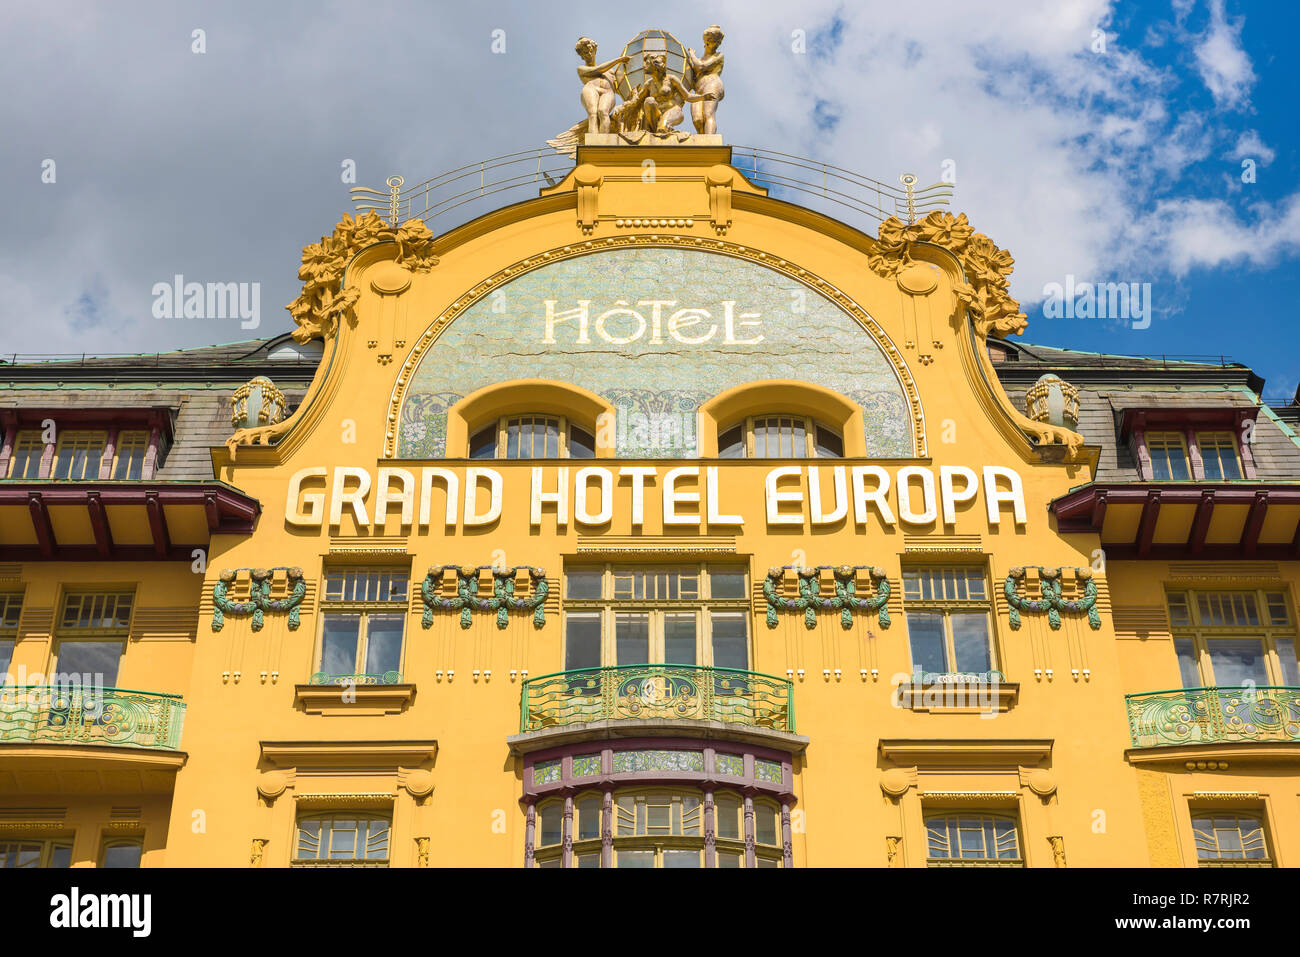 Grand Hotel Europa Prague, detail of the front of the art nouveau style Grand Hotel Europa in Wenceslas Square in central Prague, Czech Republic. - Stock Image